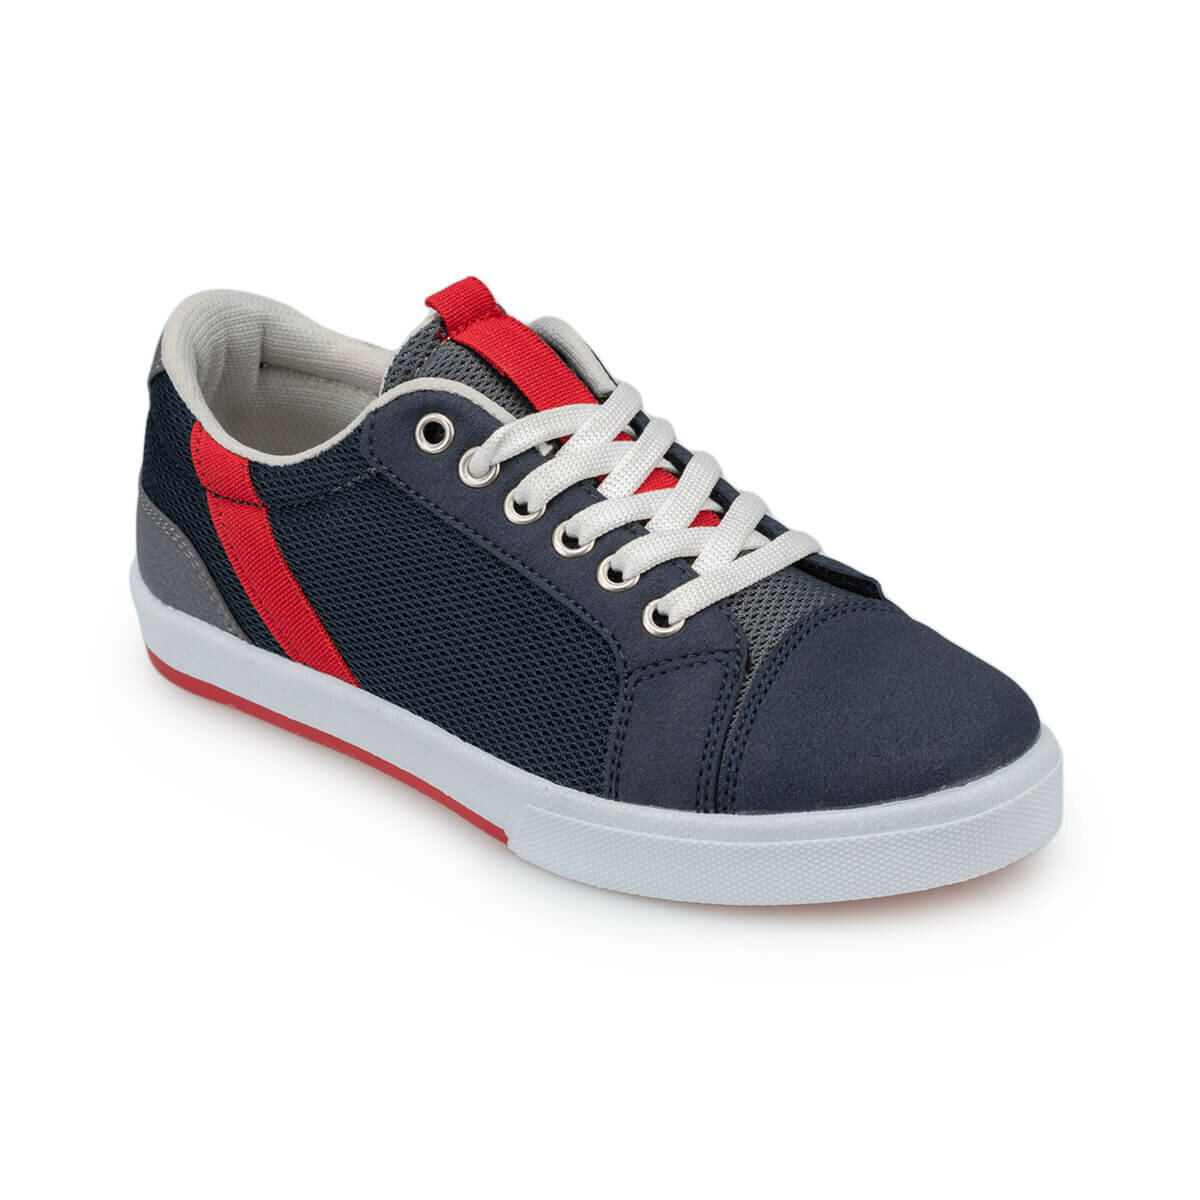 FLO 91.511306.F Navy Blue Male Child Sneaker Shoes Polaris